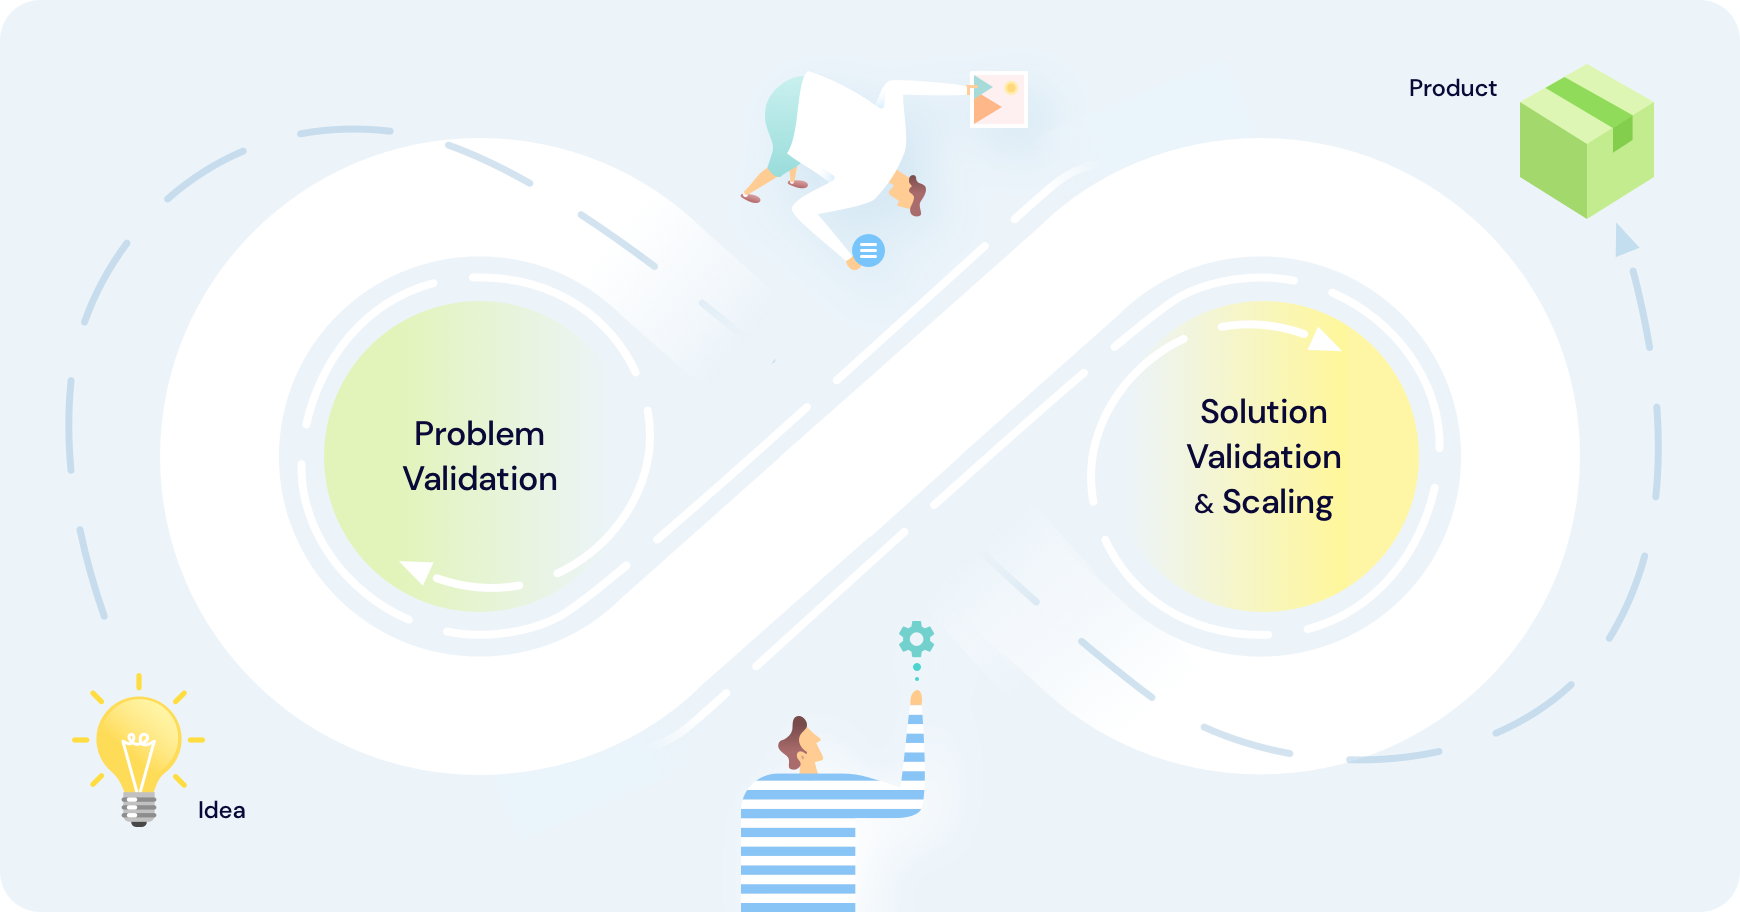 What Makes Product Development Lean